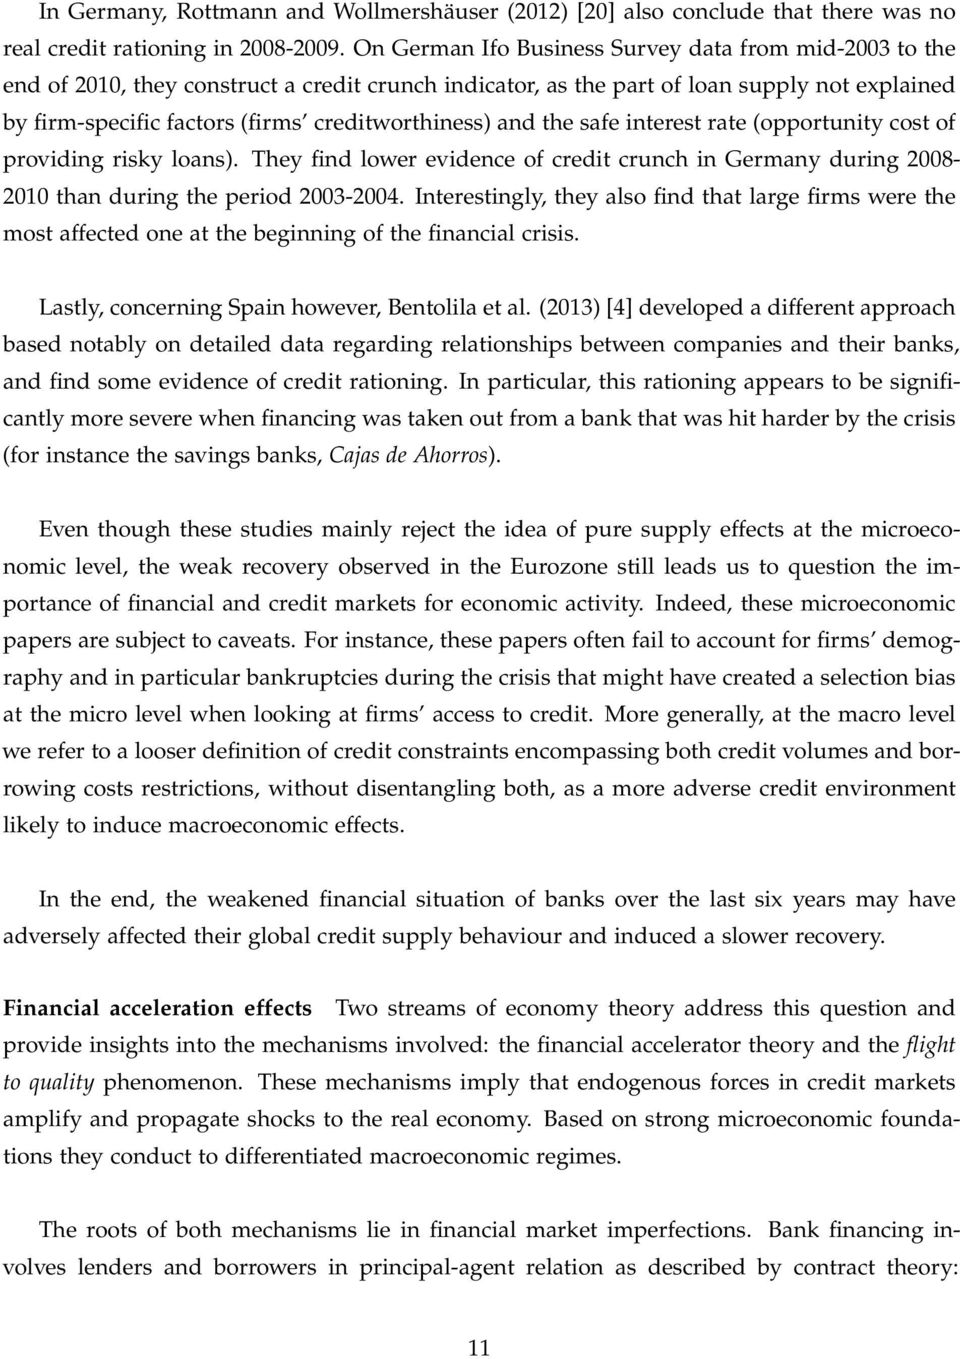 creditworthiness) and the safe interest rate (opportunity cost of providing risky loans). They find lower evidence of credit crunch in Germany during 2008-2010 than during the period 2003-2004.